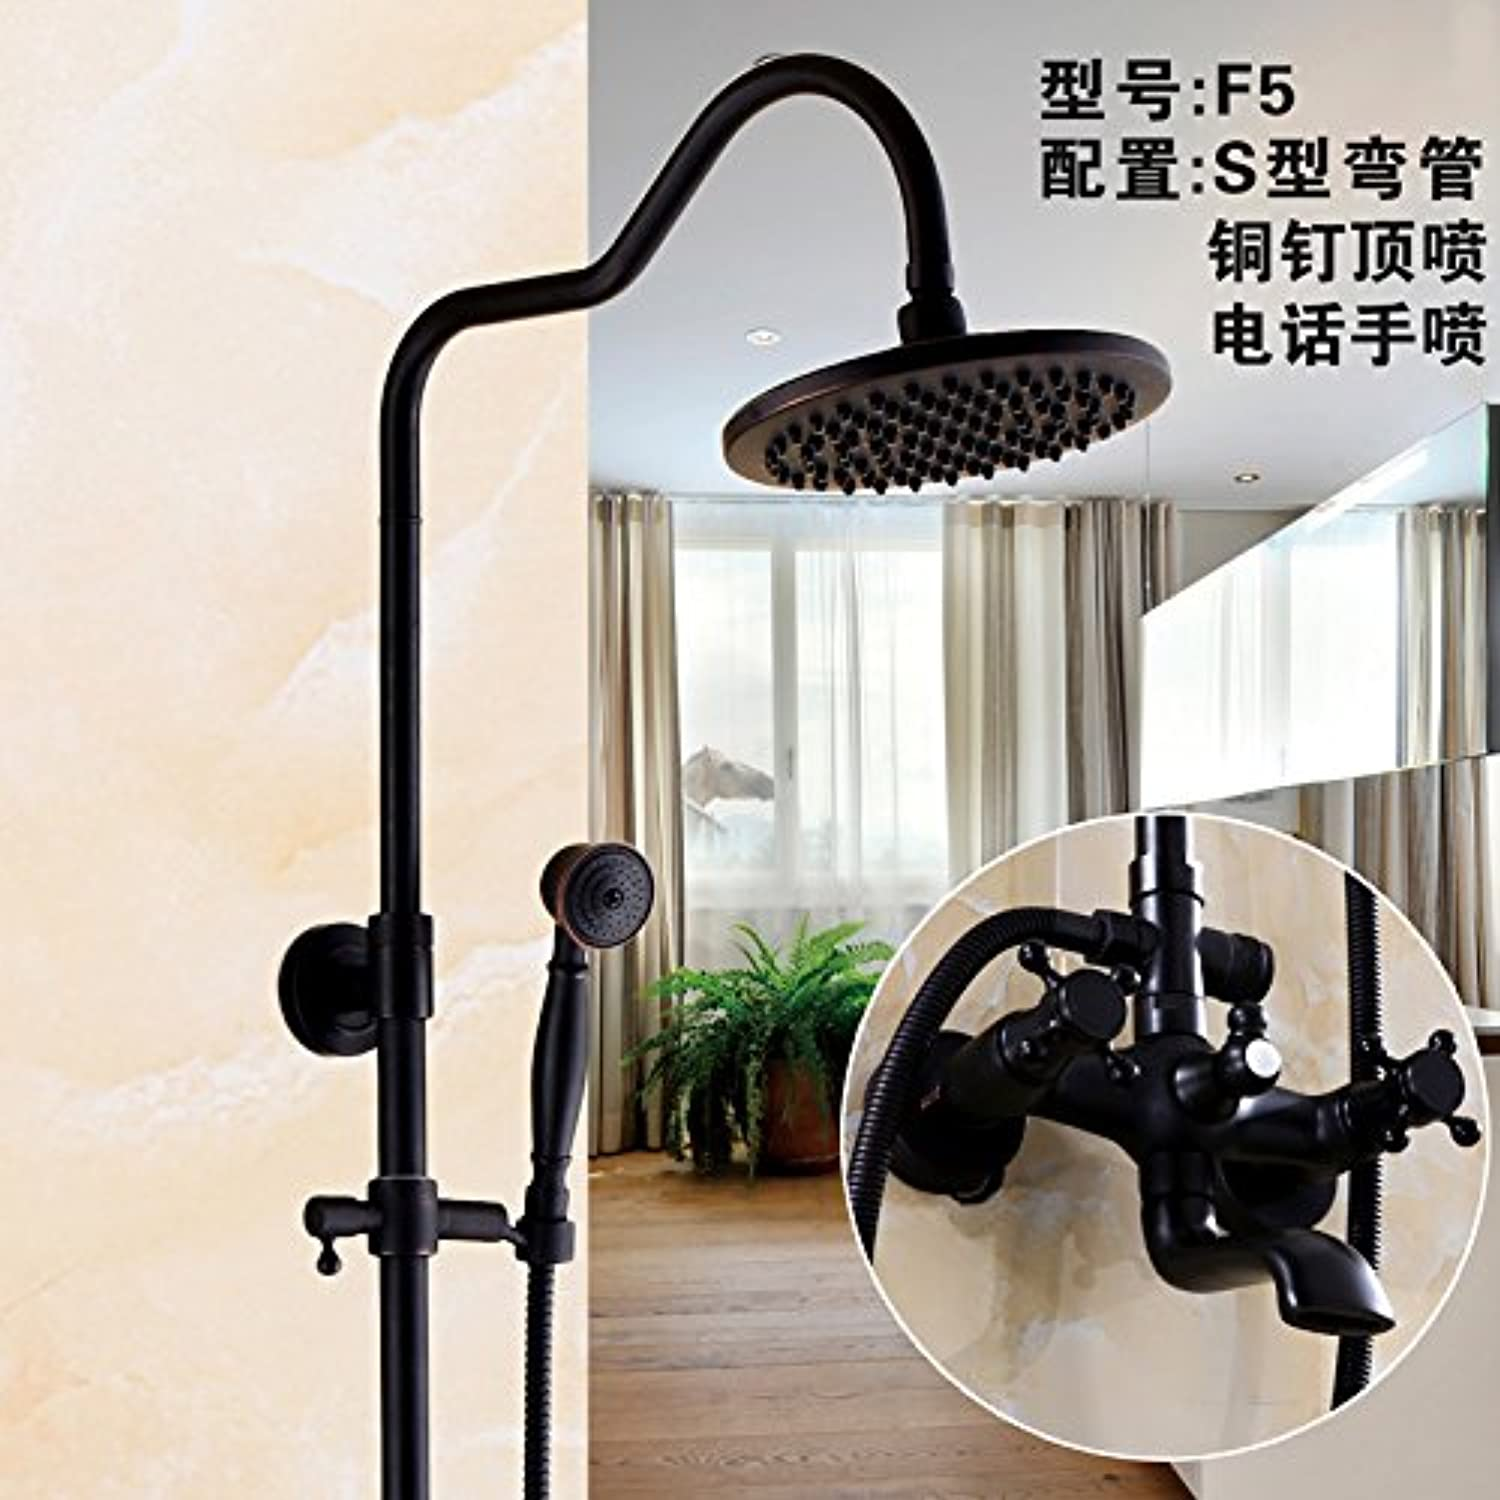 Hlluya Professional Sink Mixer Tap Kitchen Faucet The pressurization full copper bathroom black shower faucet set antique shower faucet can lift redary,F5